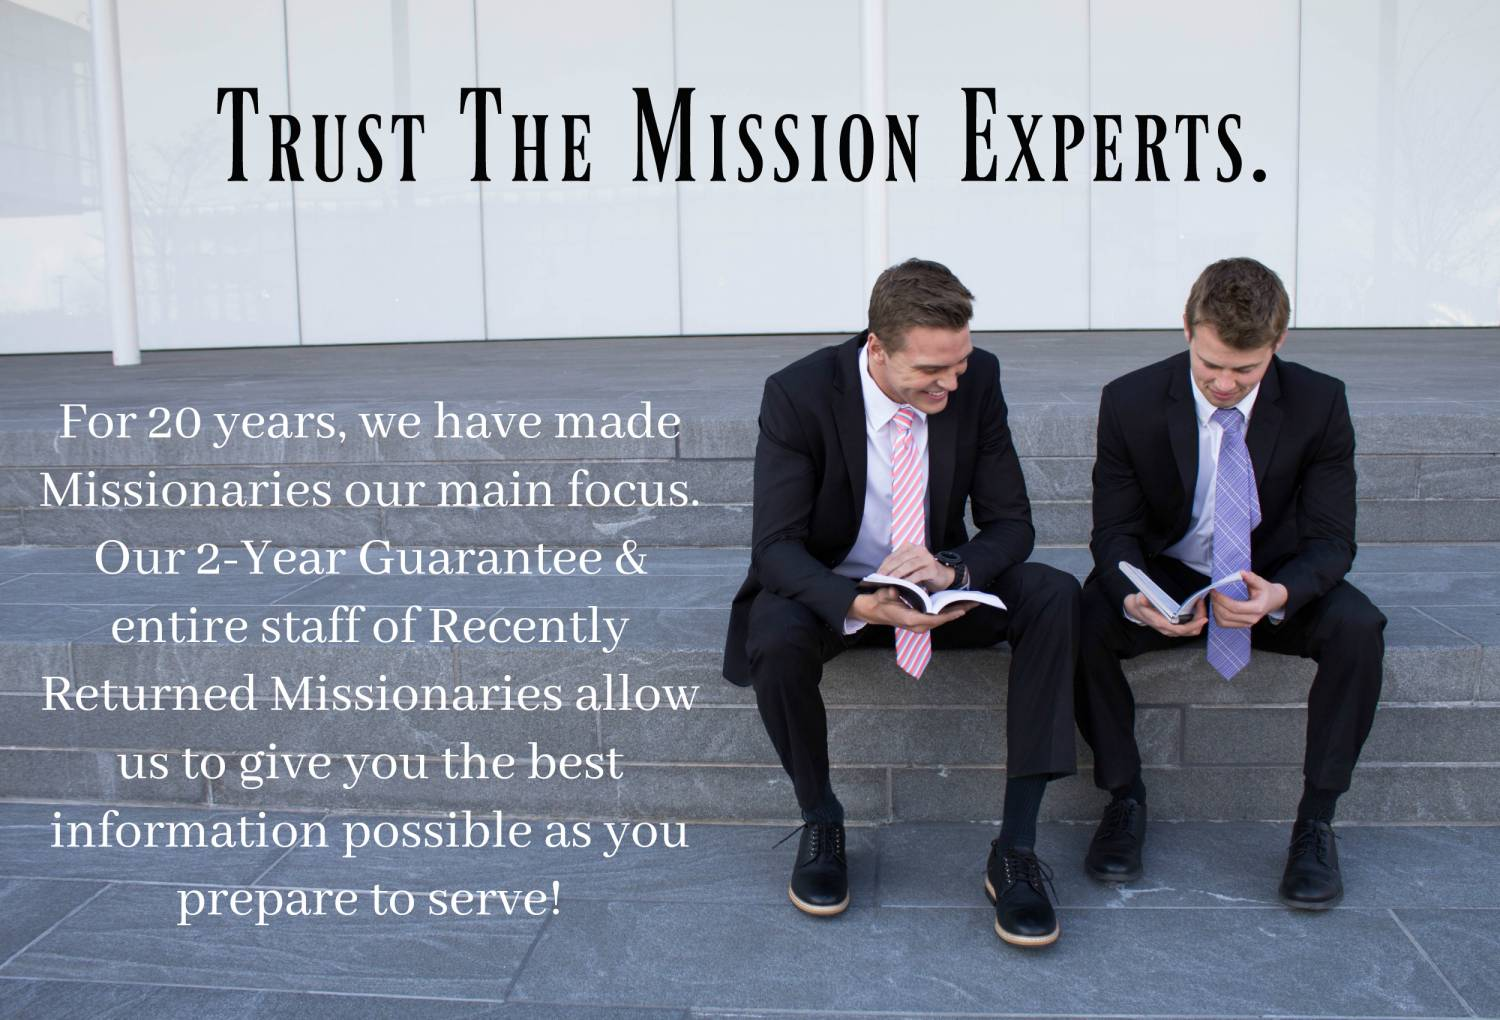 mission experts